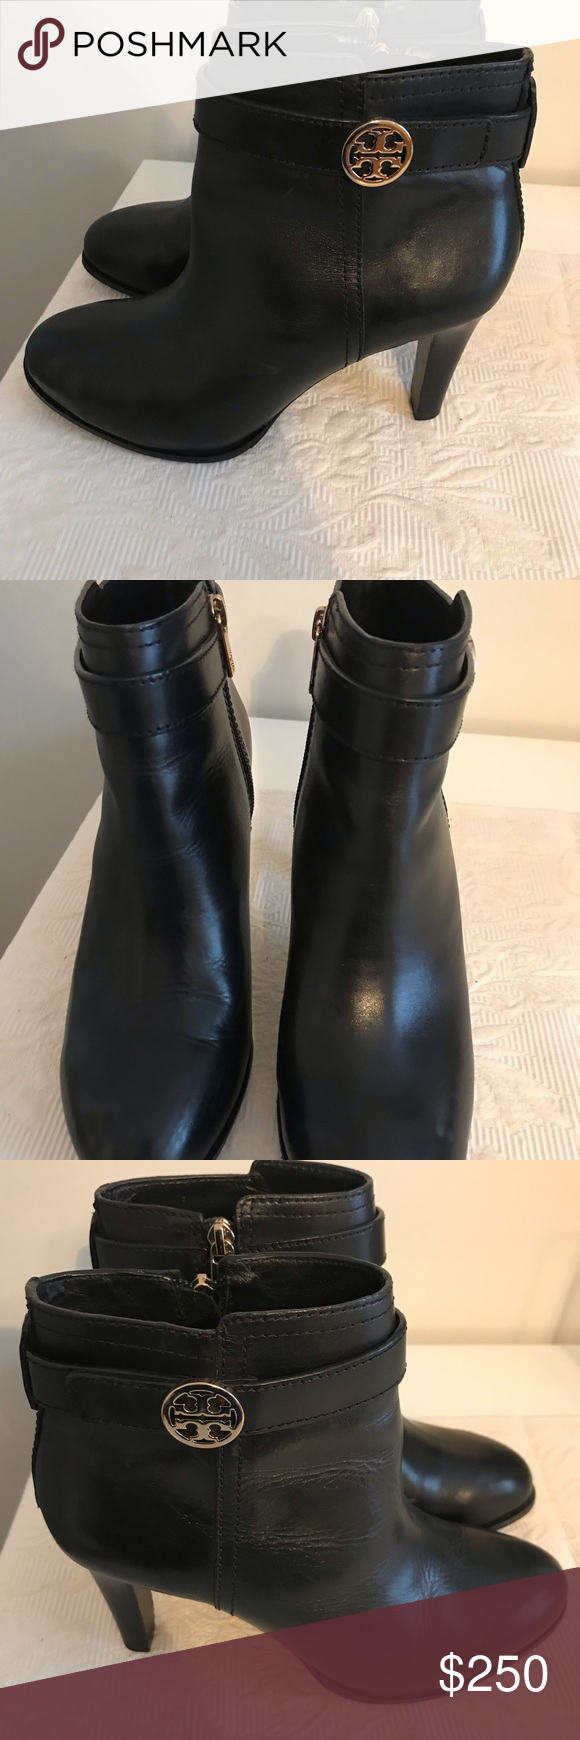 86729f24d3c Tory Burch Black Leather Bootie Authentic This boot is in brand new  condition. Beautiful leather and comfortable. Tory Burch Shoes Ankle Boots    Booties